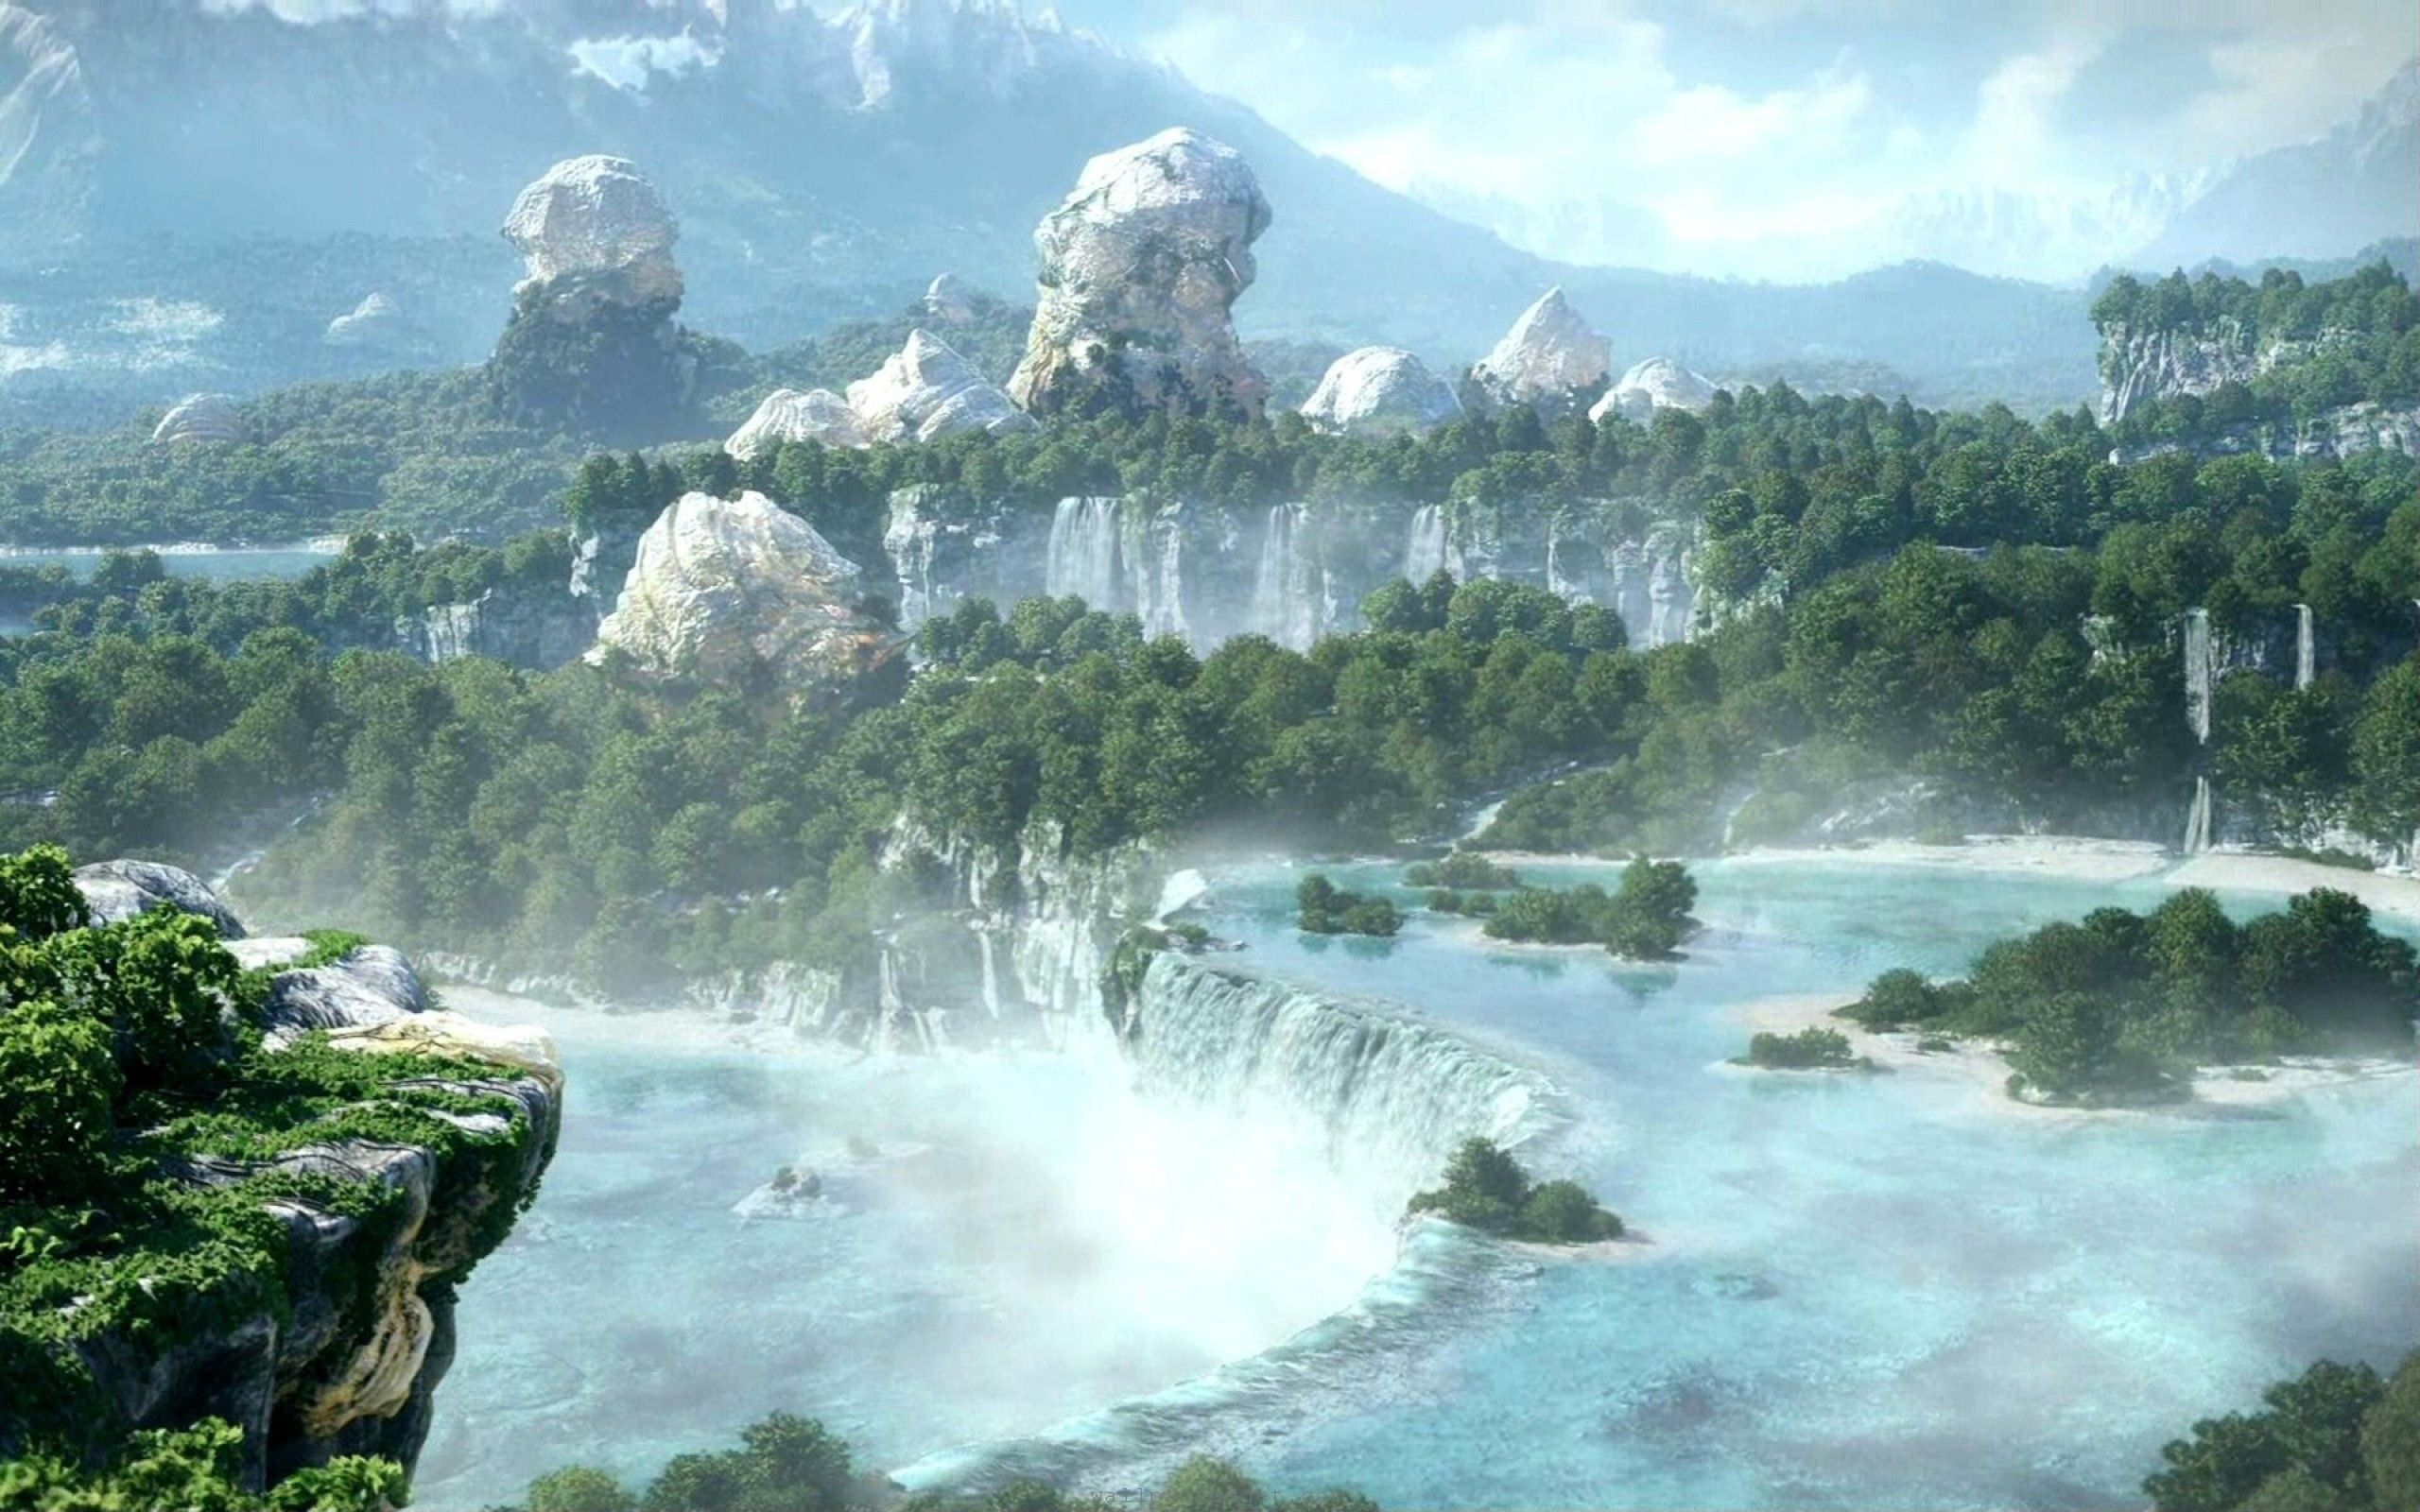 Final Fantasy Landscape Wallpapers Picture With High Resolution Wallpaper 2560x1600 Px 66793 KB